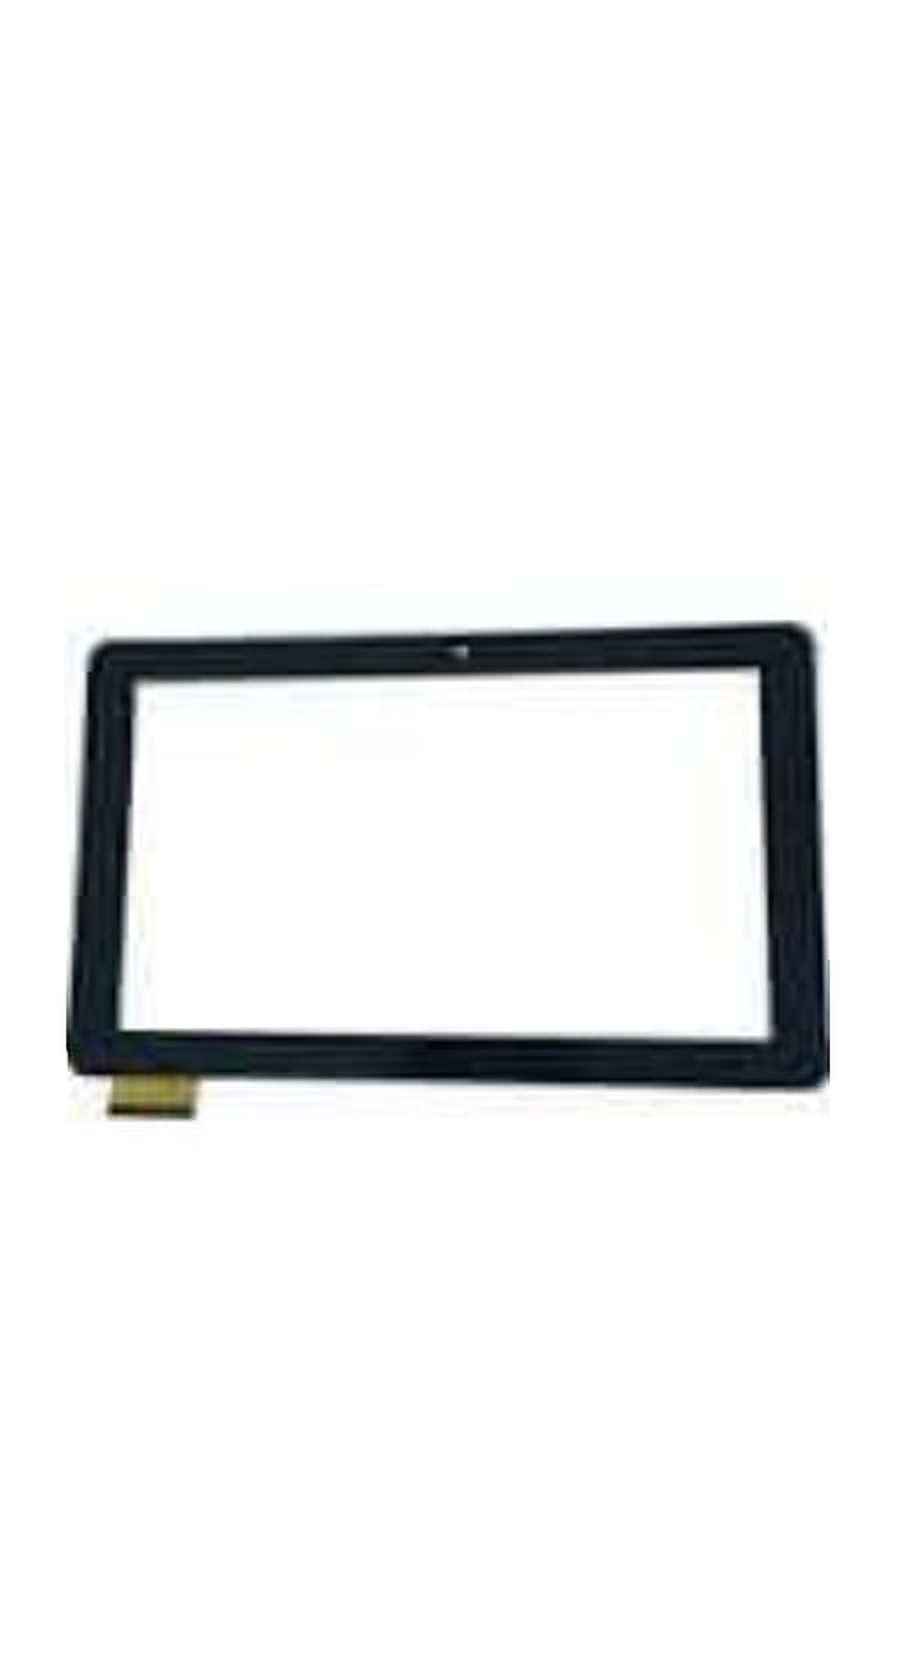 DIGITIZER BITMORE 10.1 MID 1128R (HC261159A1) BLACK